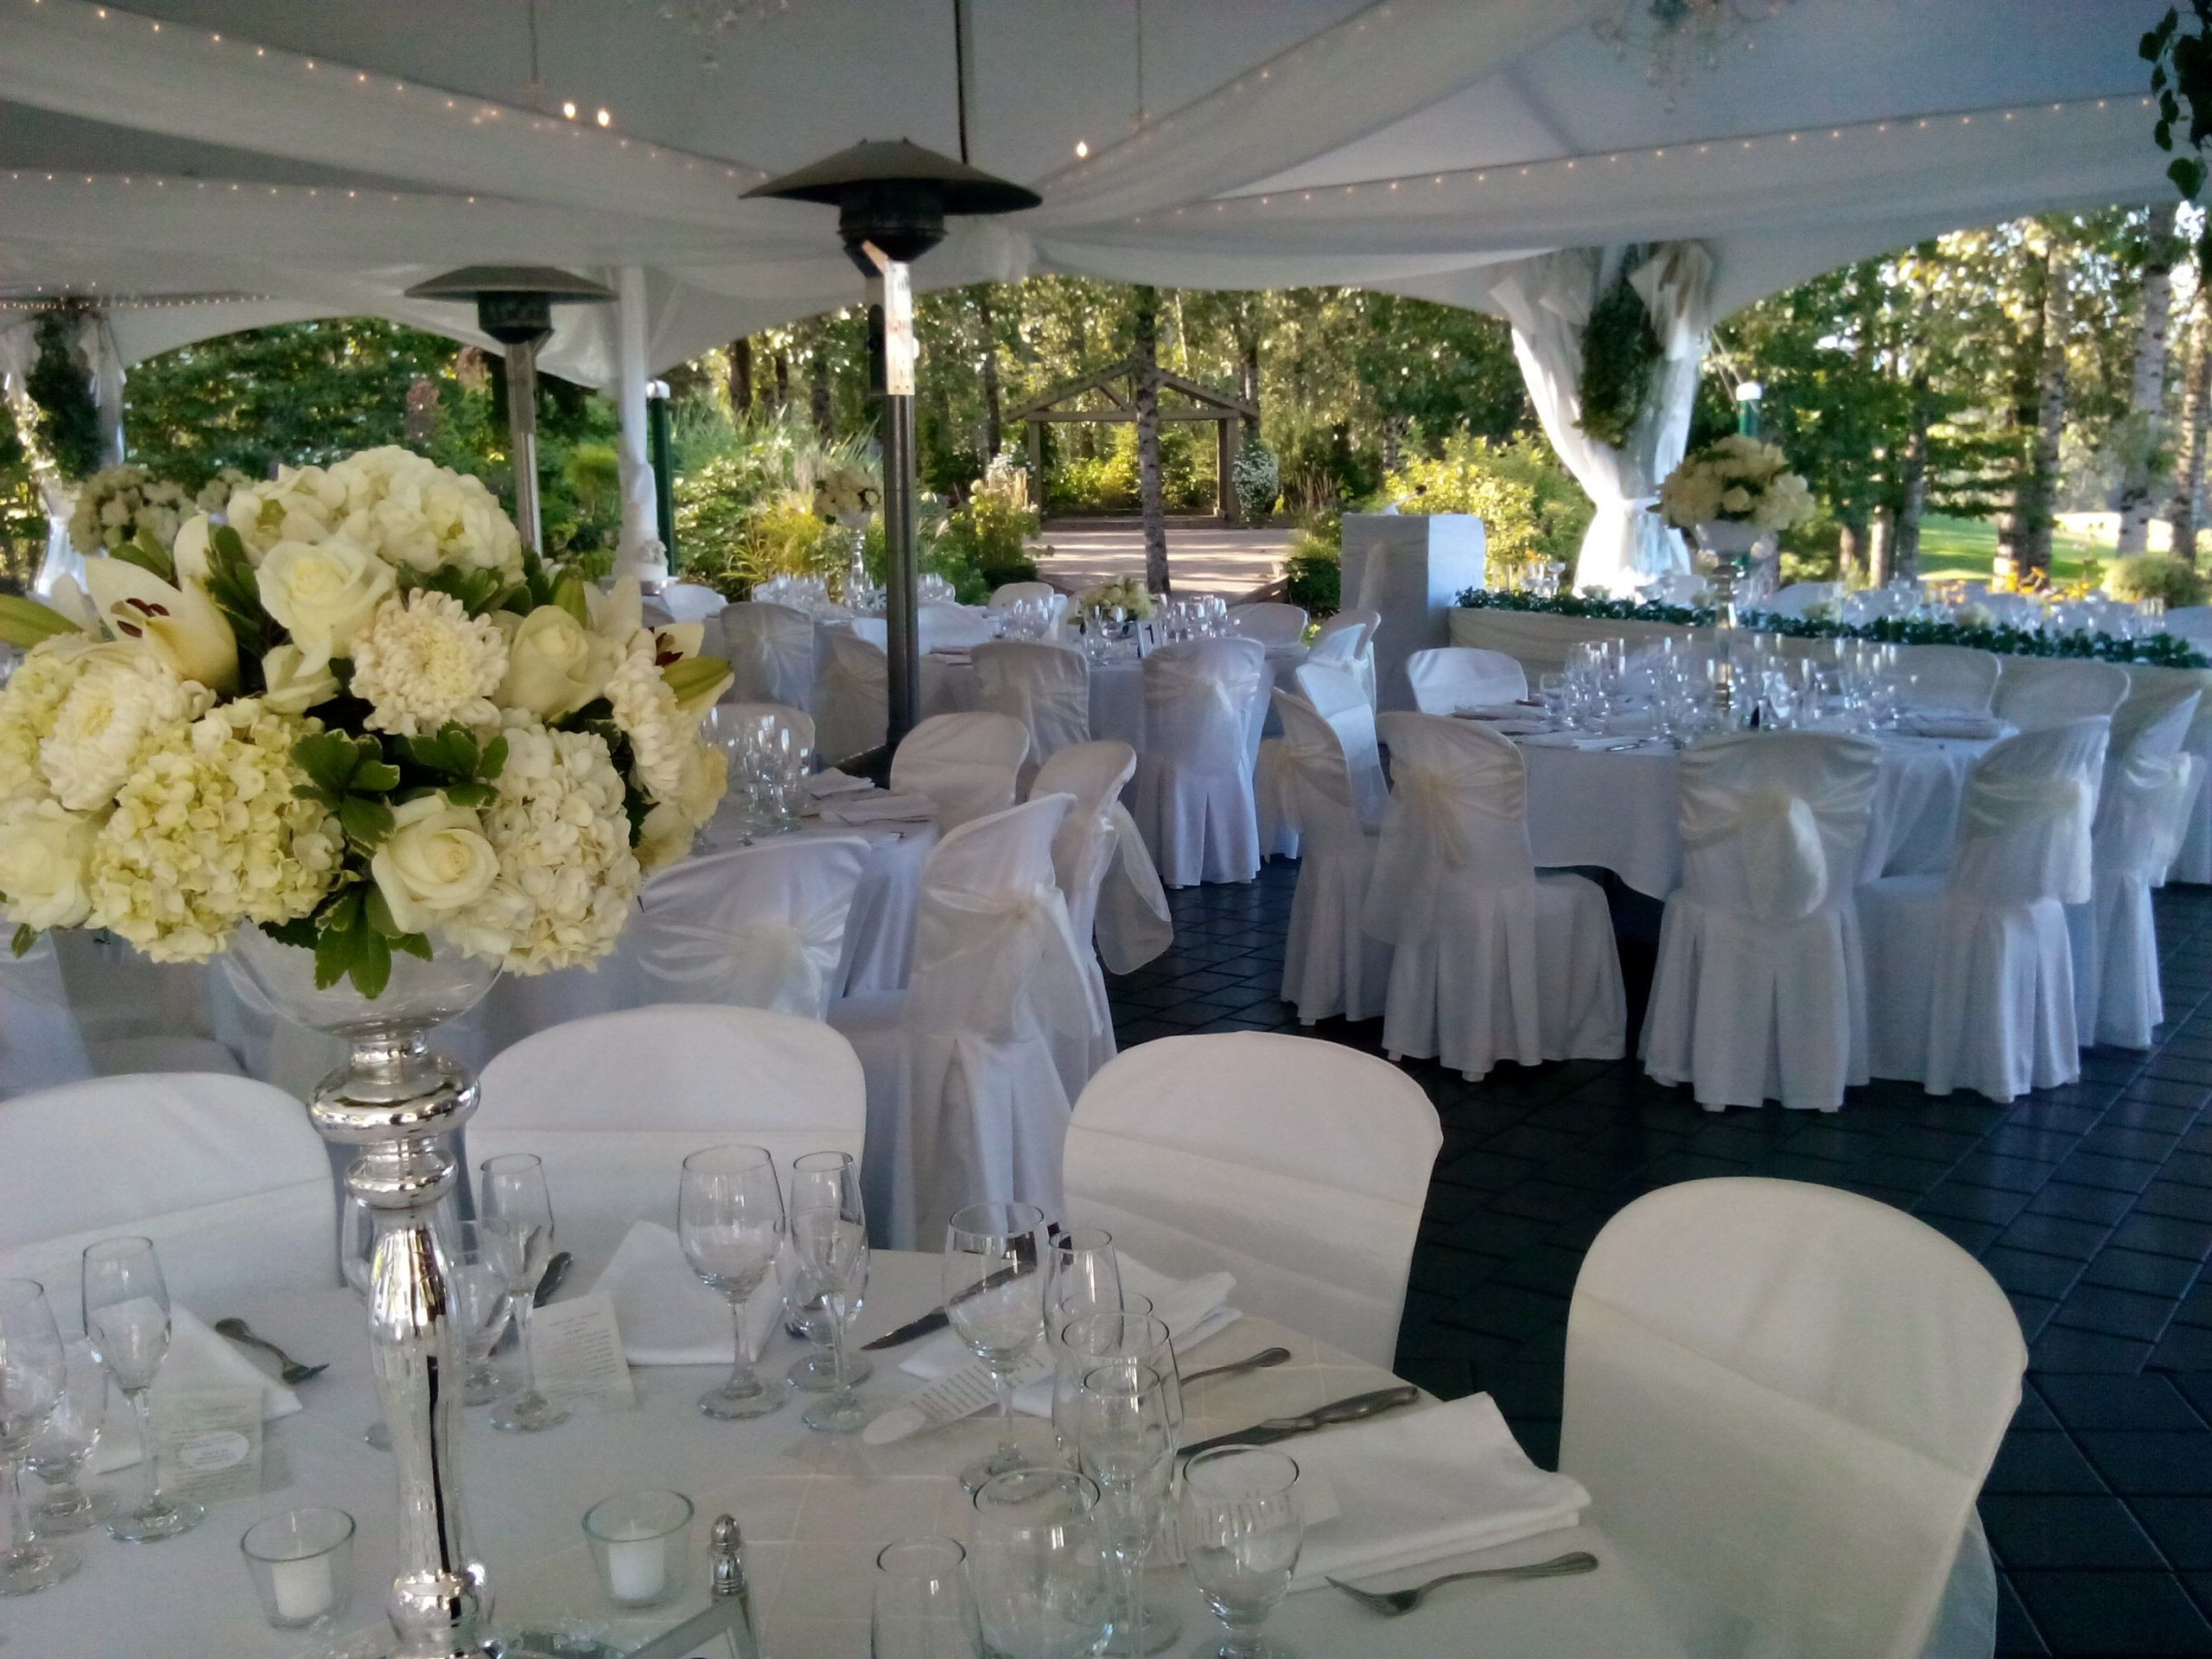 The Redwoods Golf Course Outdoor Wedding Venue Langley BC redwoodsweddings